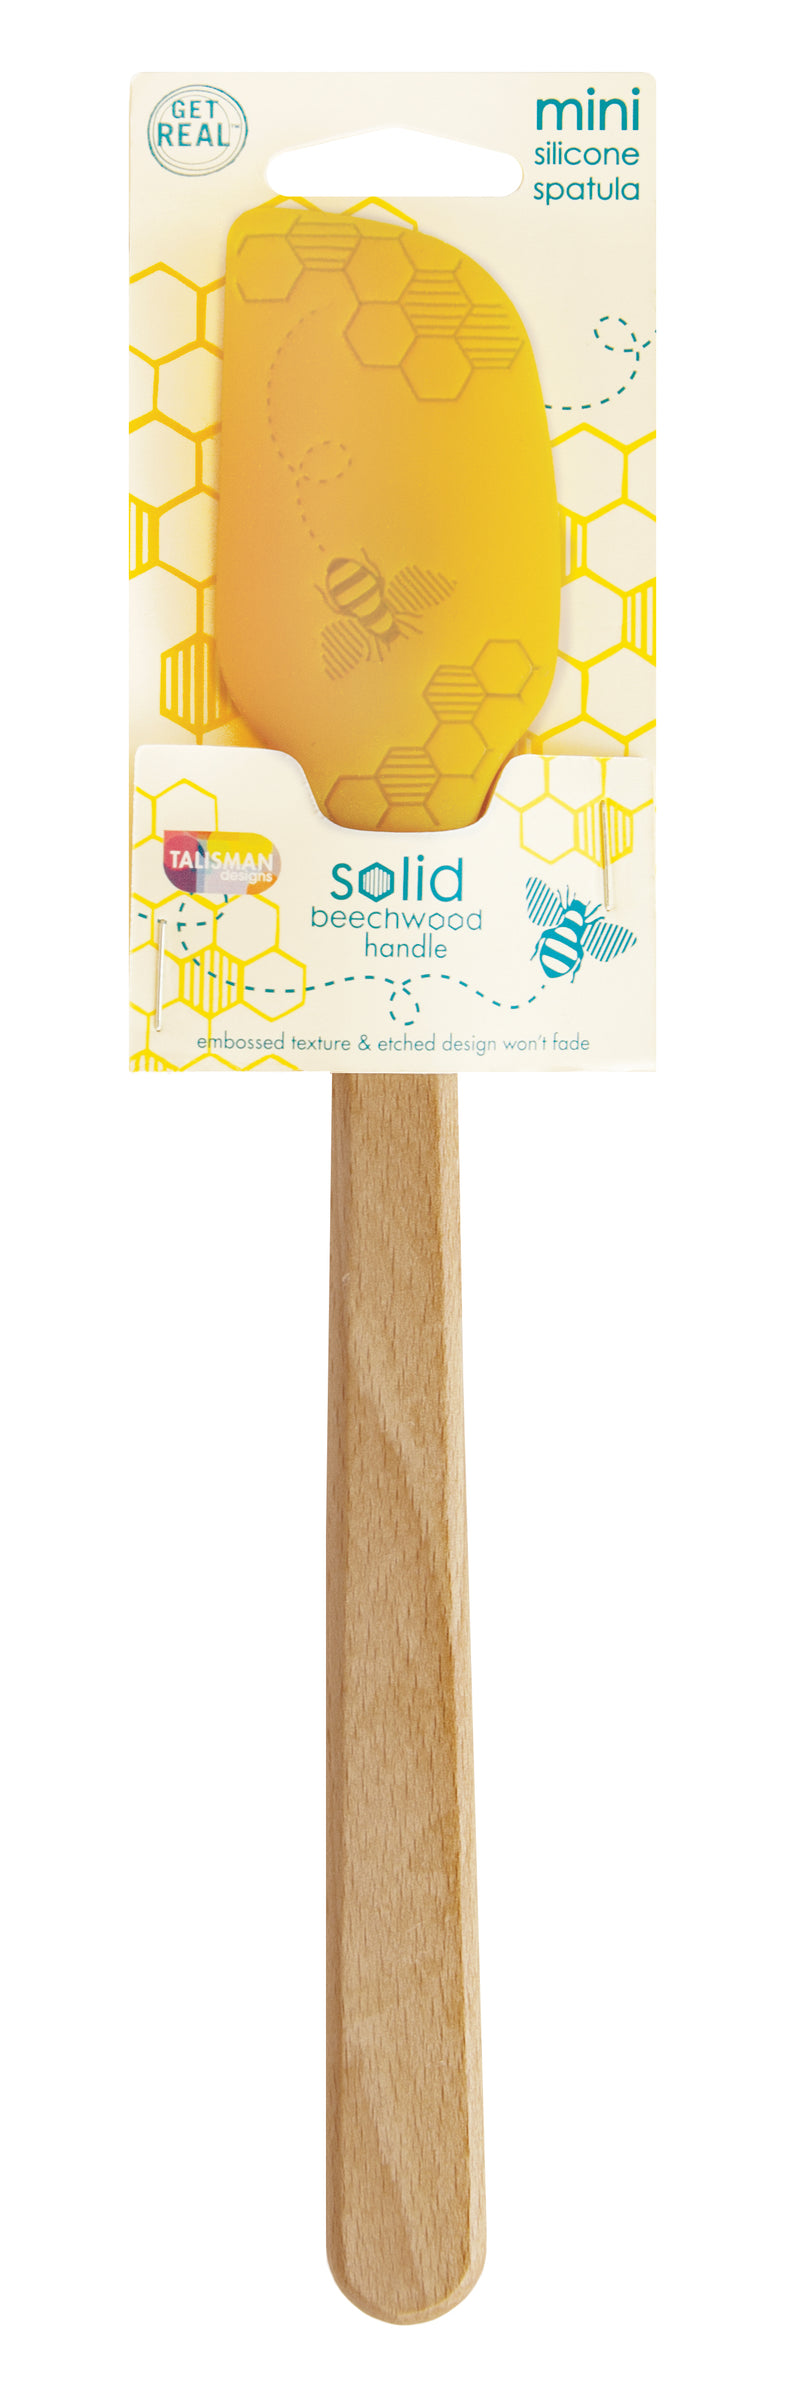 Small Silicone Spatula Honey Bee